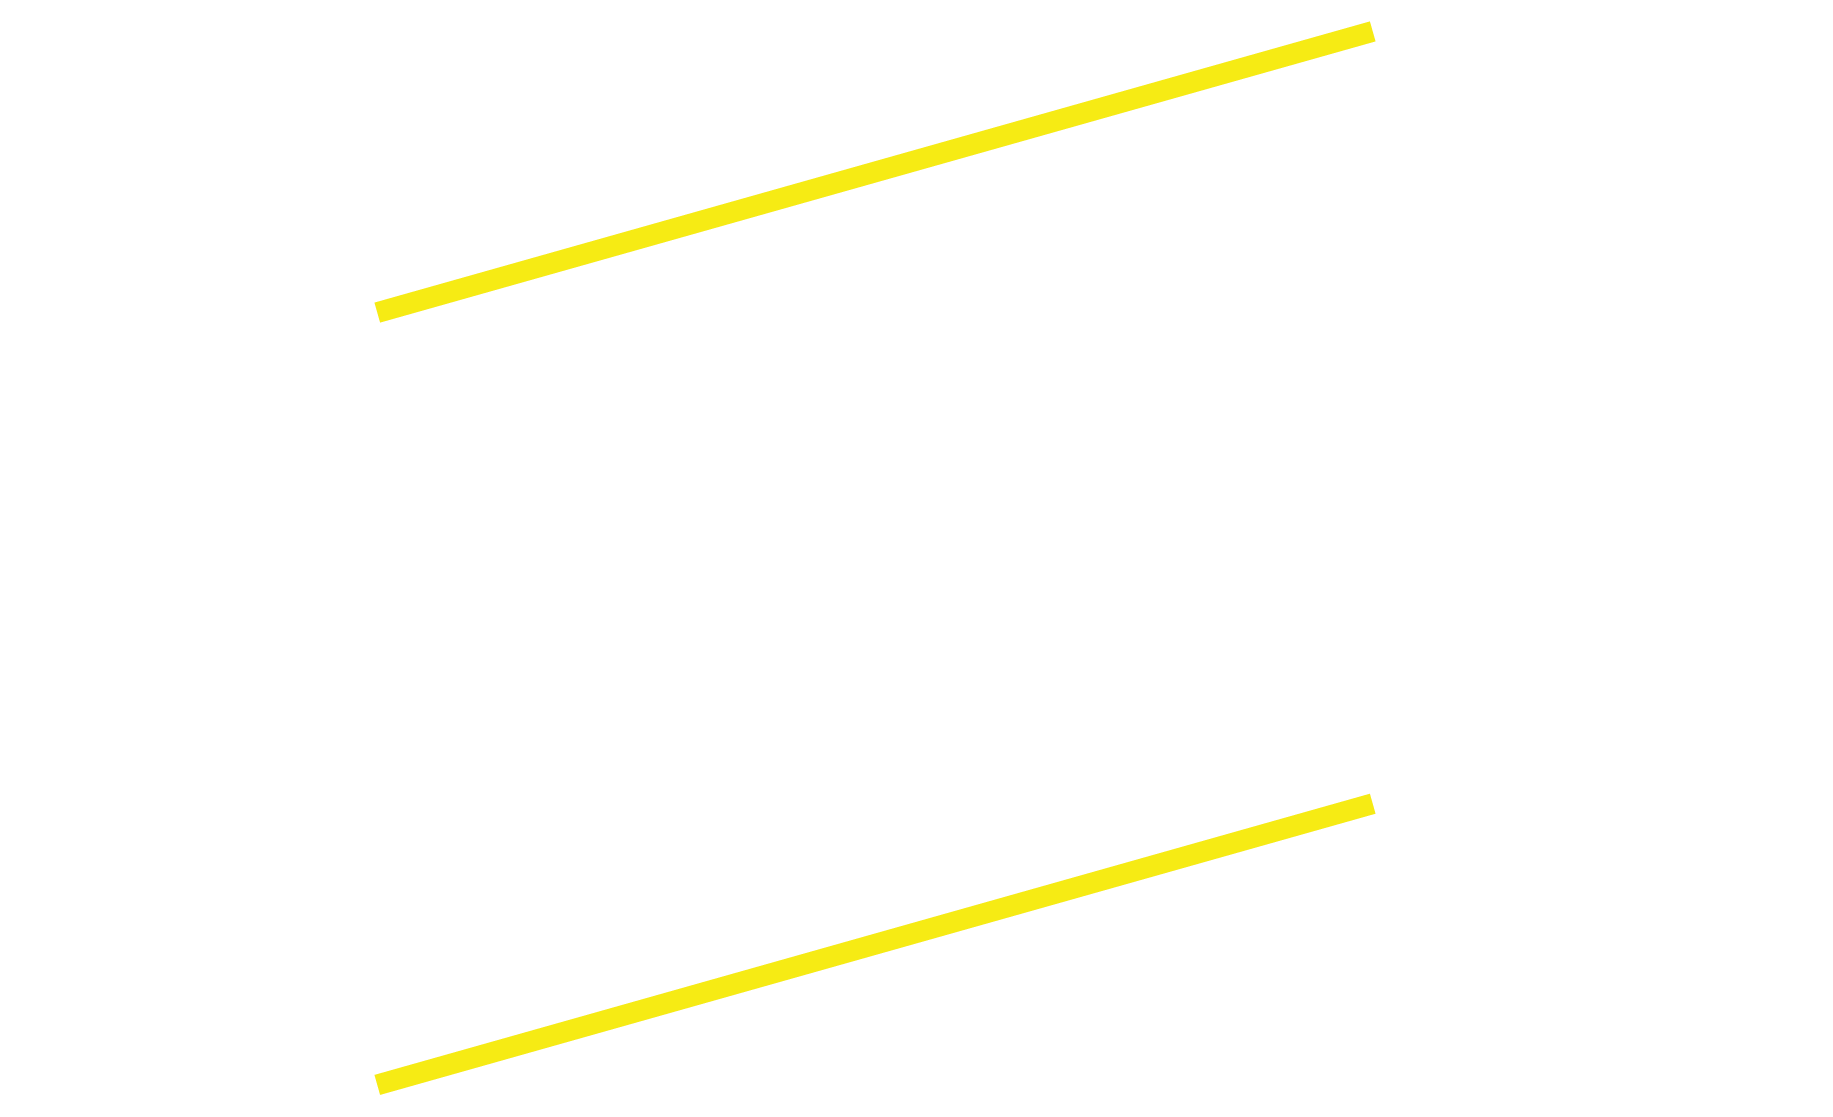 Custom Furniture and Home Goods by Arc Welding